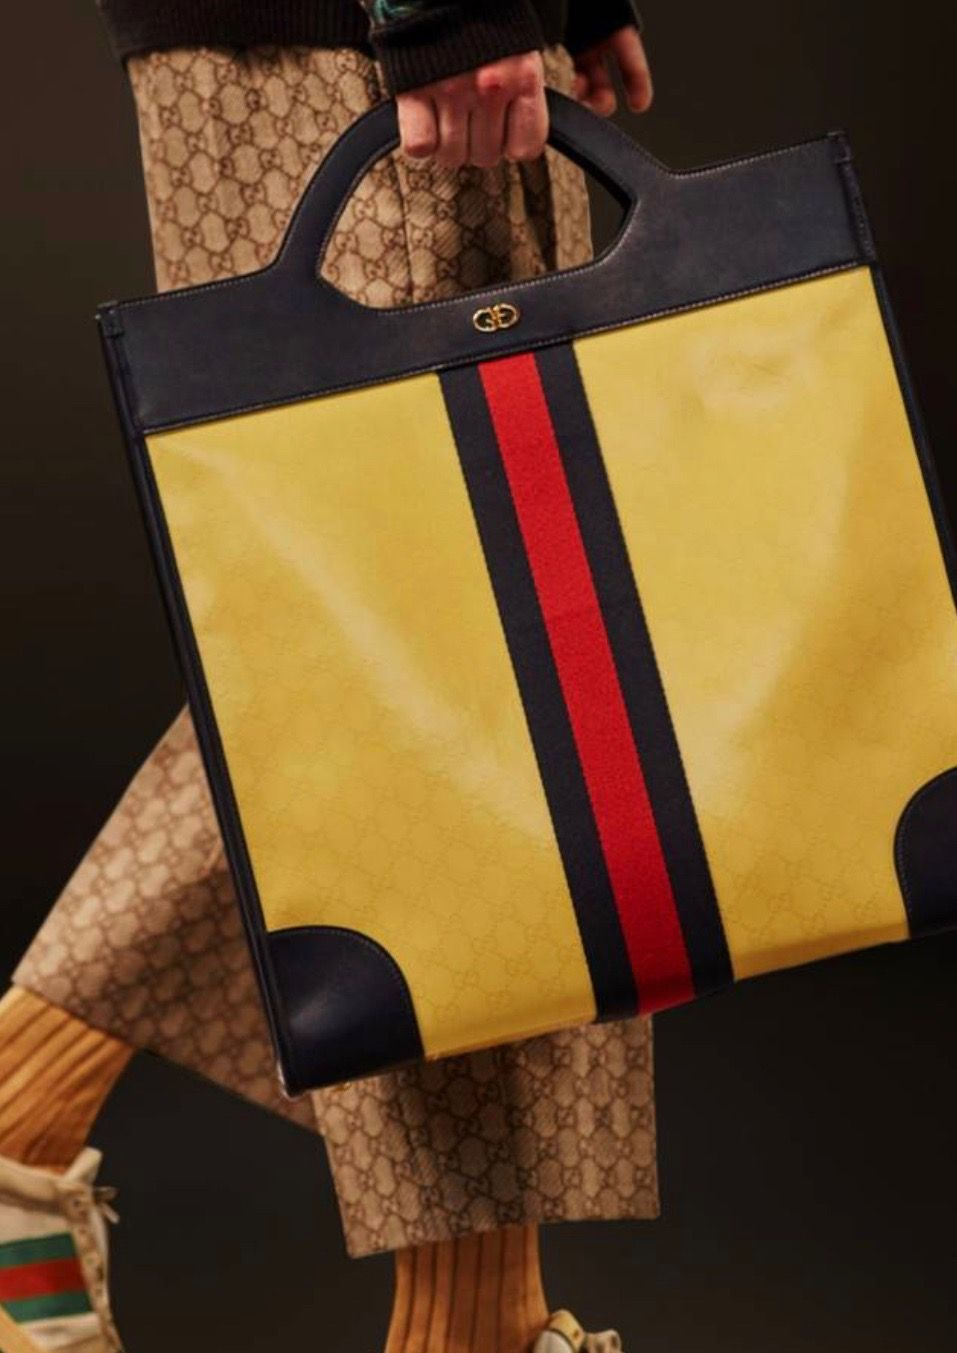 New Gucci Bags 2020 Gucci   New designs in Bags 2019/2020 #luxurydot| Handbags in